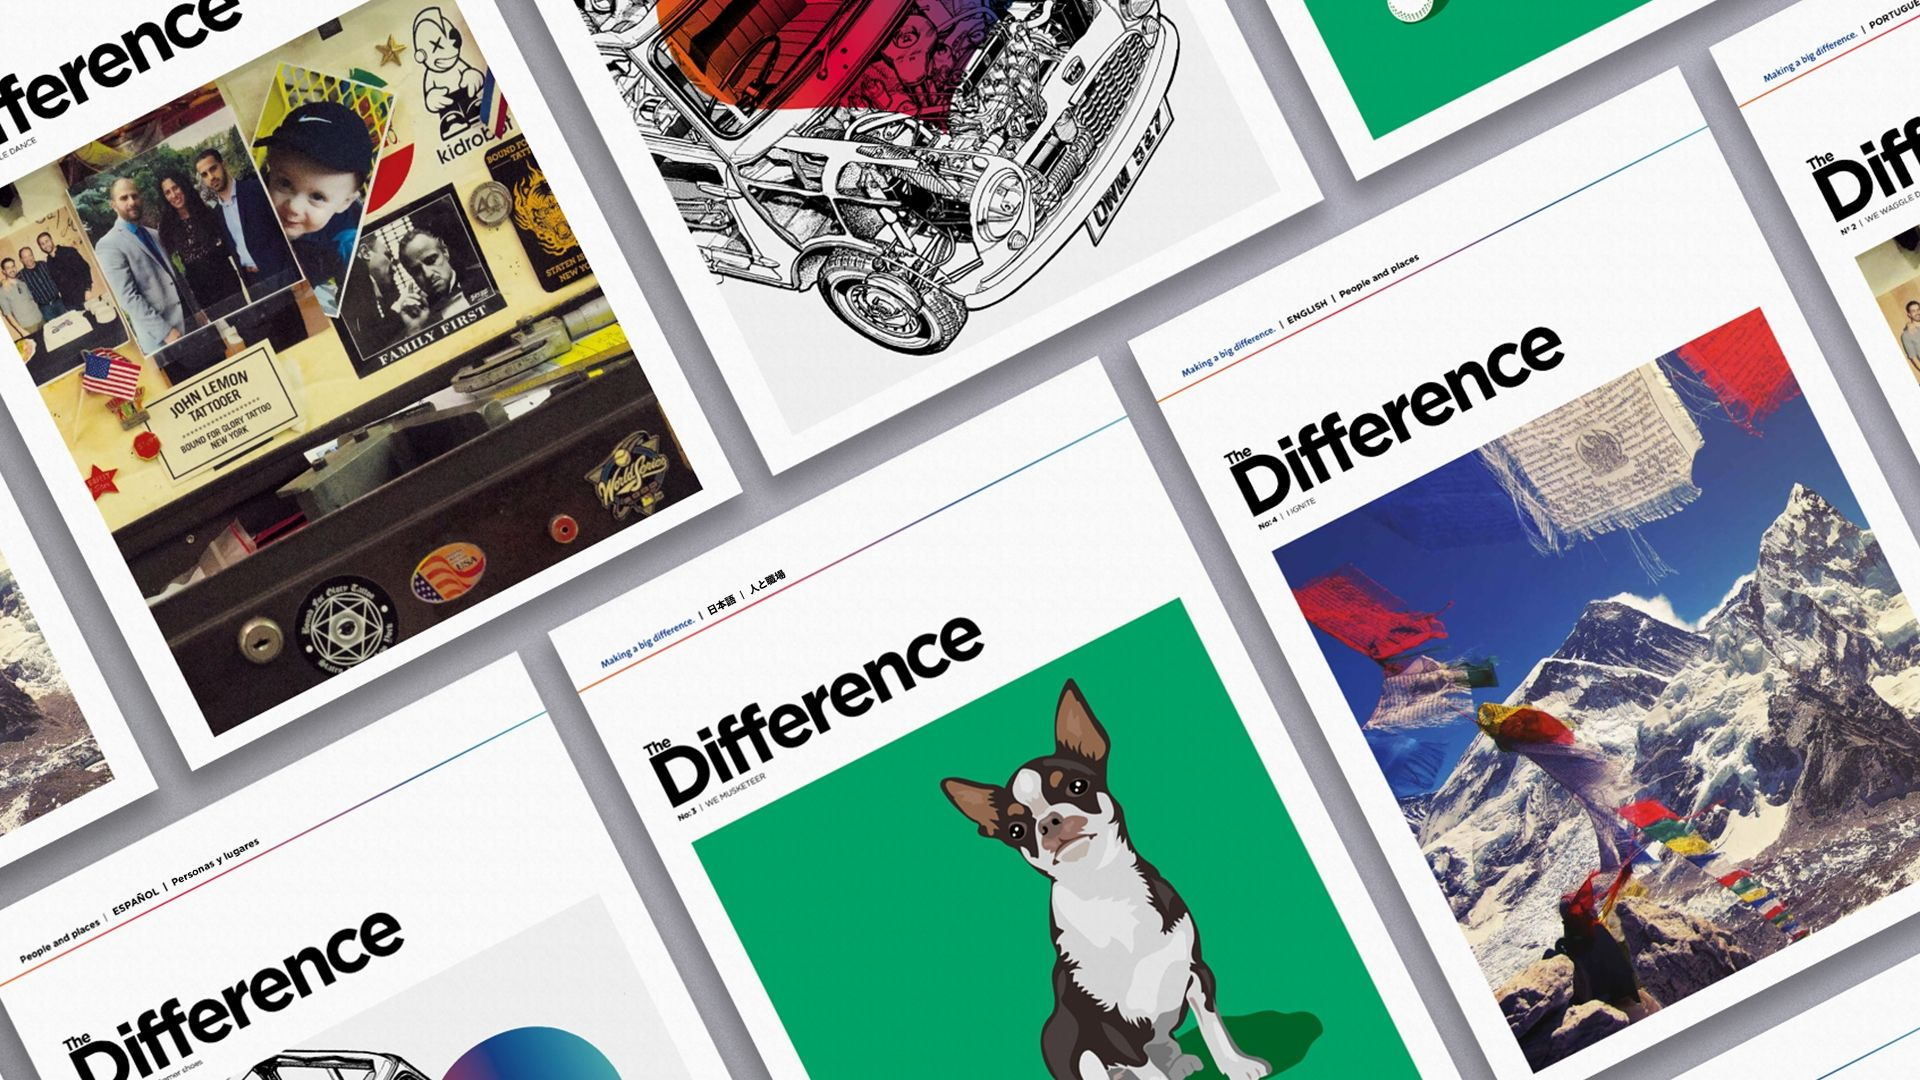 The Difference Magazine for Saint Gobain, showing the different cover design for each issue